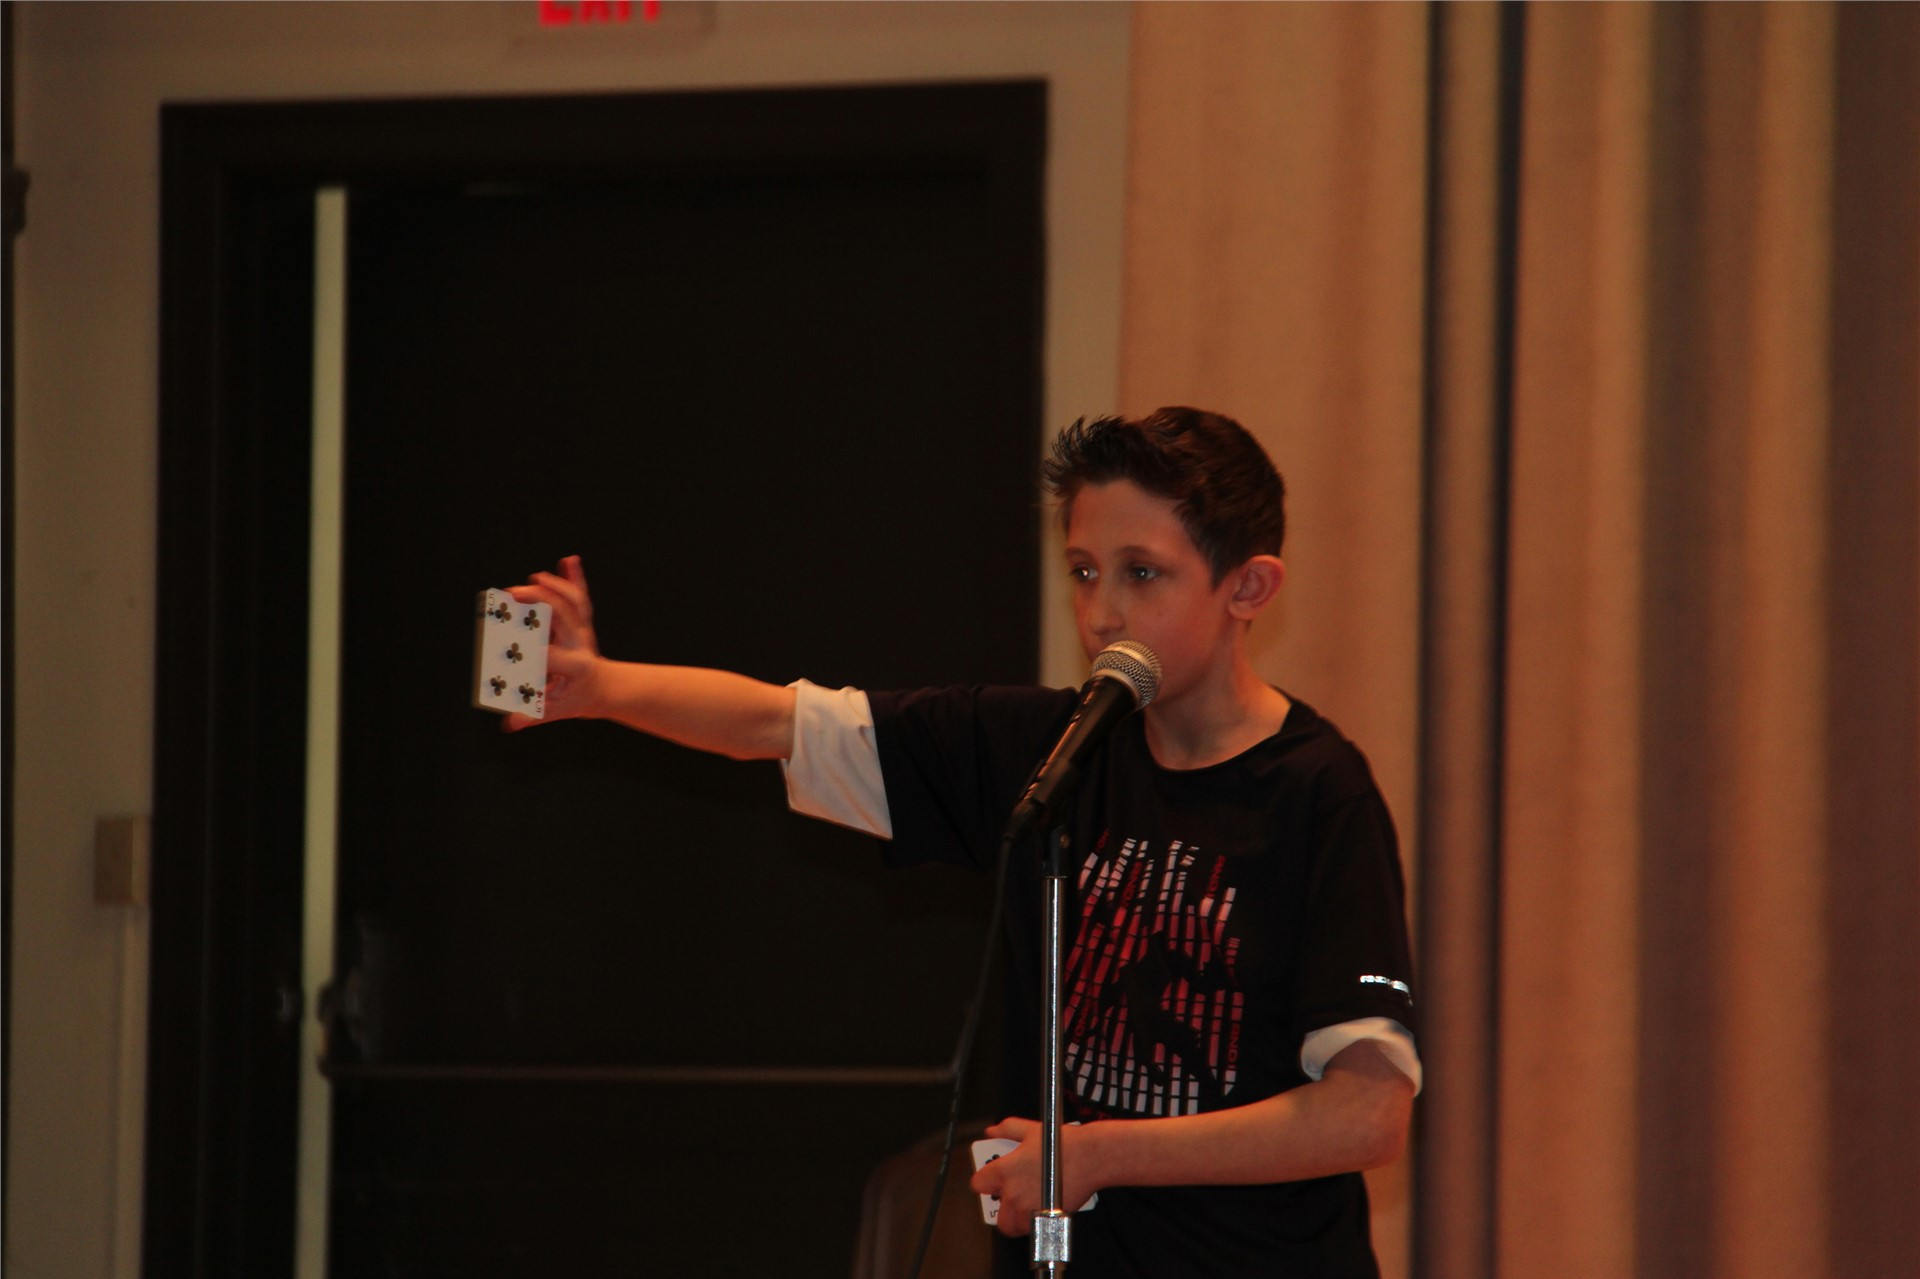 student on stage with card in hand